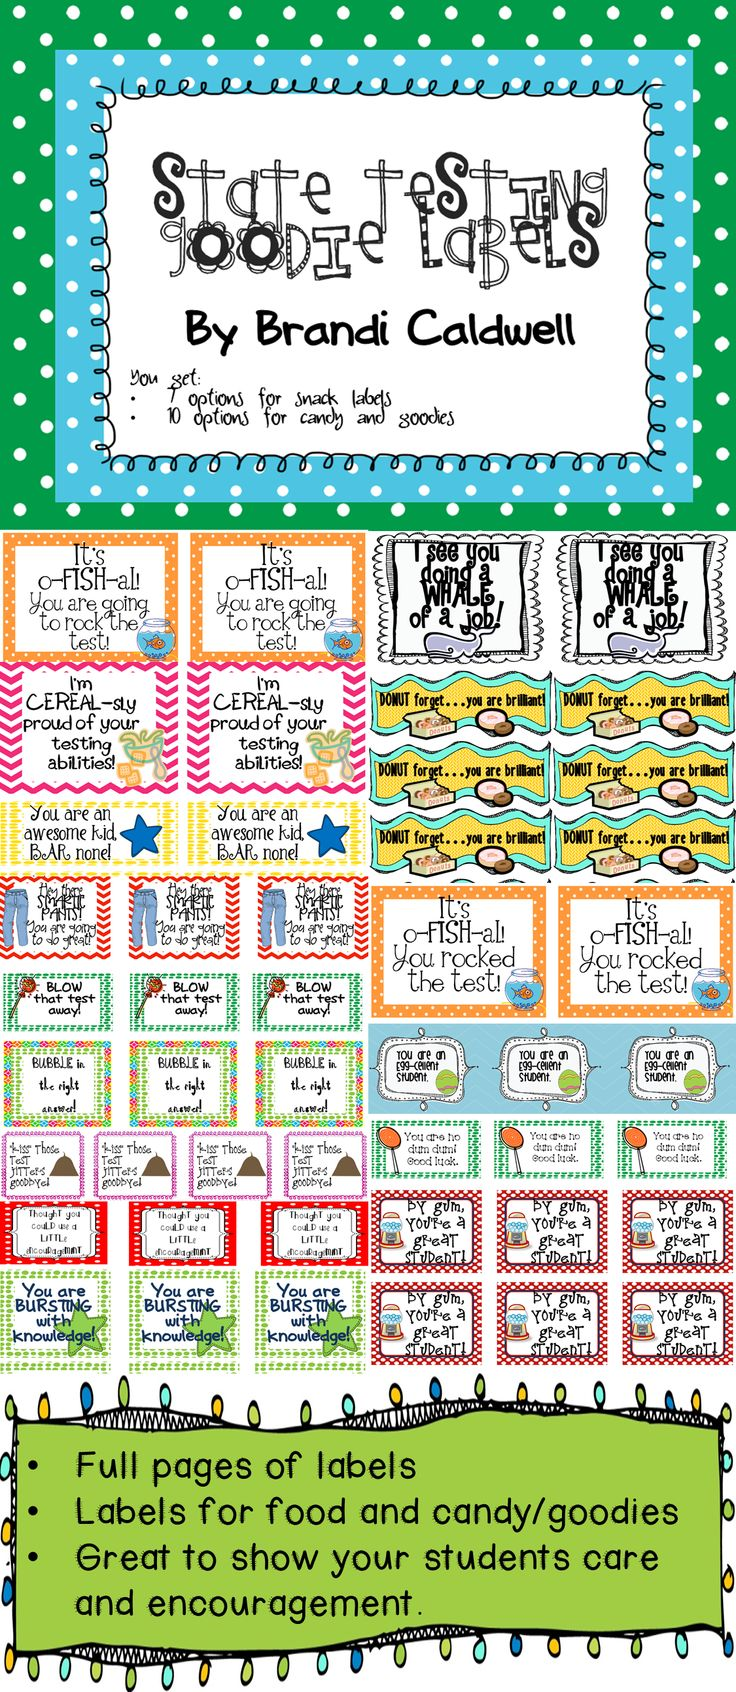 Testing quotes for elementary students - State Testing Goodie Labels